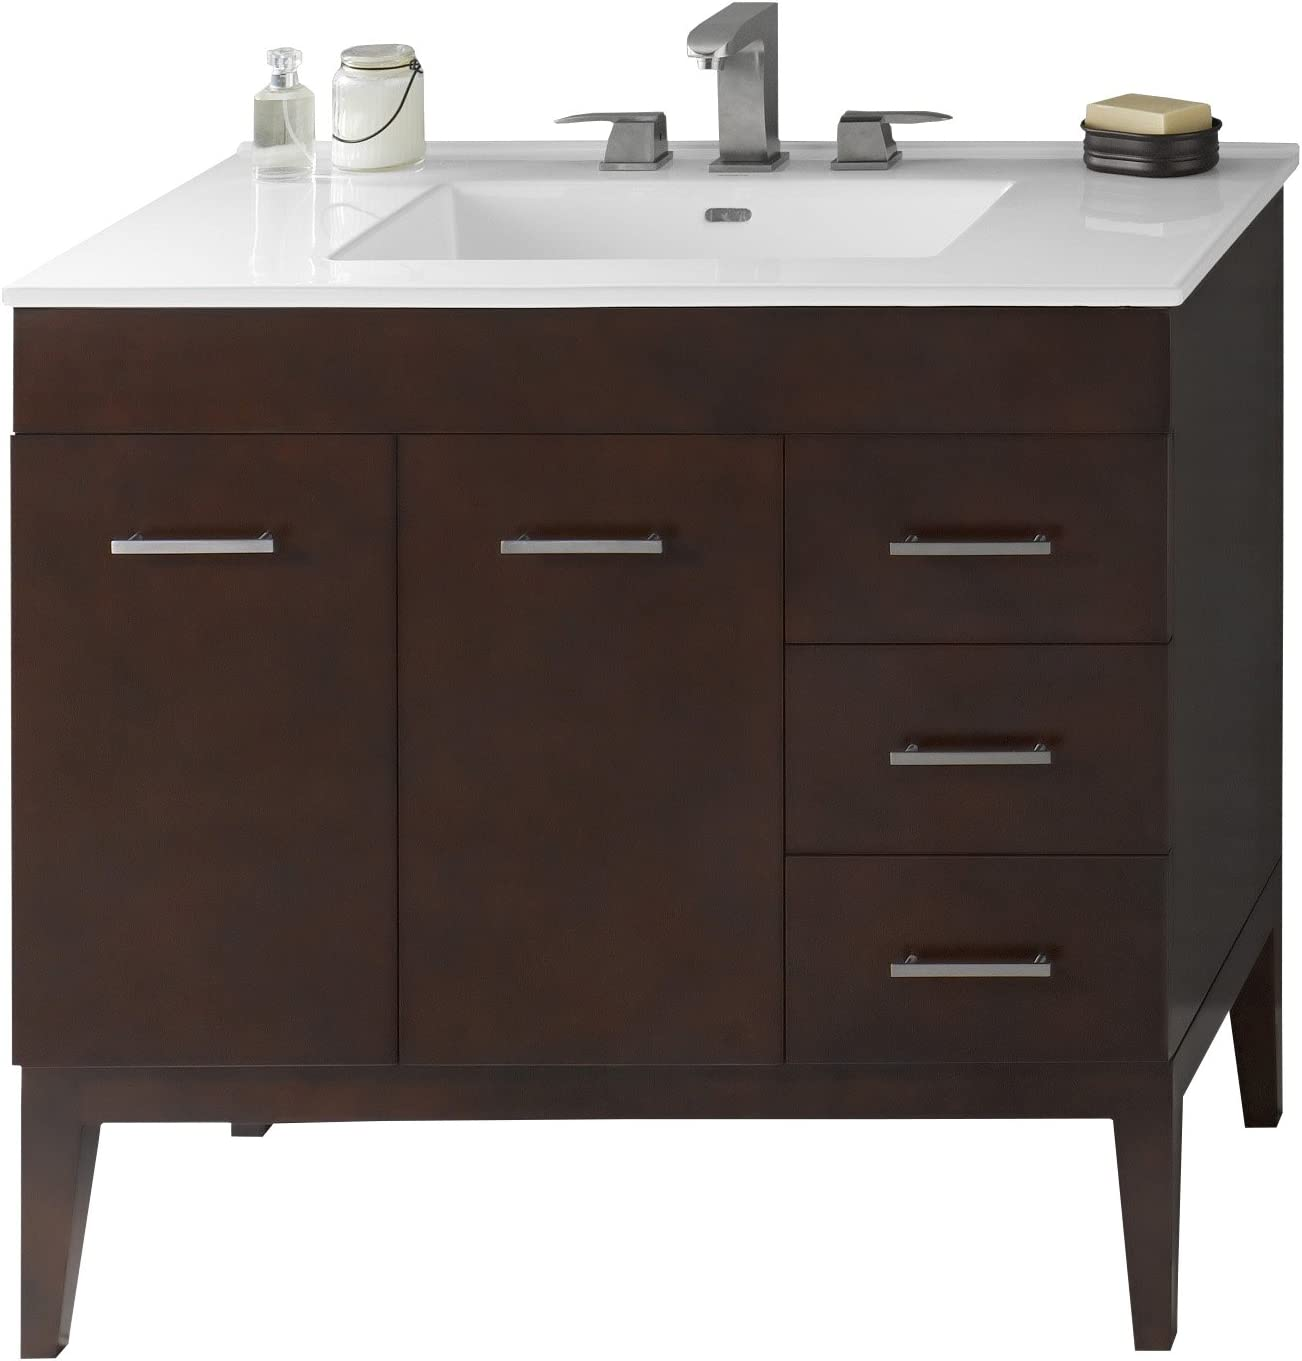 Amazon Com Ronbow Venus 37 Inch Bathroom Vanity Set In Dark Cherry Single Bathroom Vanity Cabinet With Soft Close Drawers White Larisa Bathroom Sink Top With 8 Inch Widespread Faucet Hole 037036 7l H01 Kit 2 Kitchen